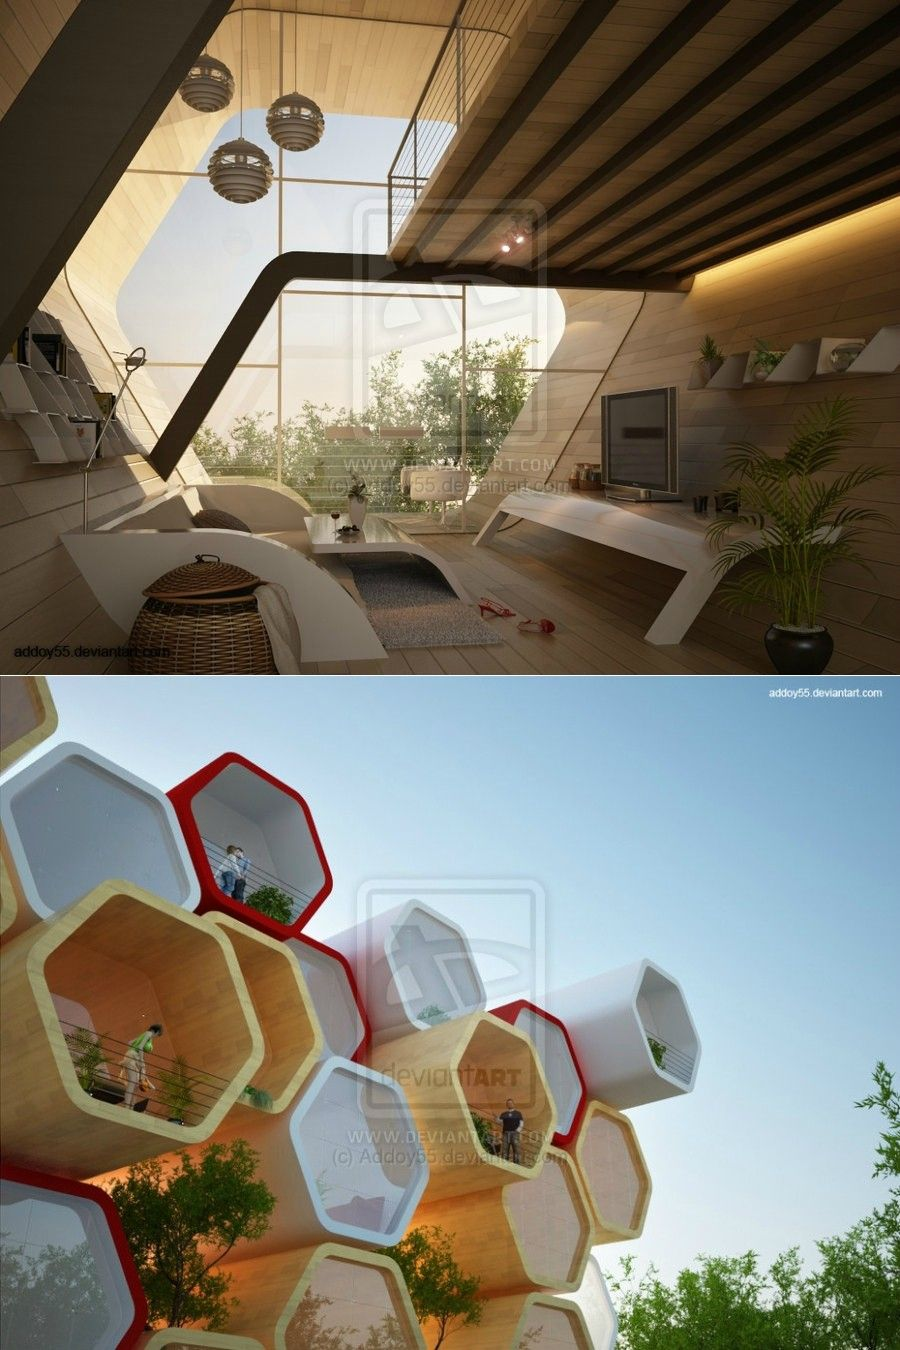 Apartment Building Design Concepts interesting room concept [900x1350] | modern architecture, future